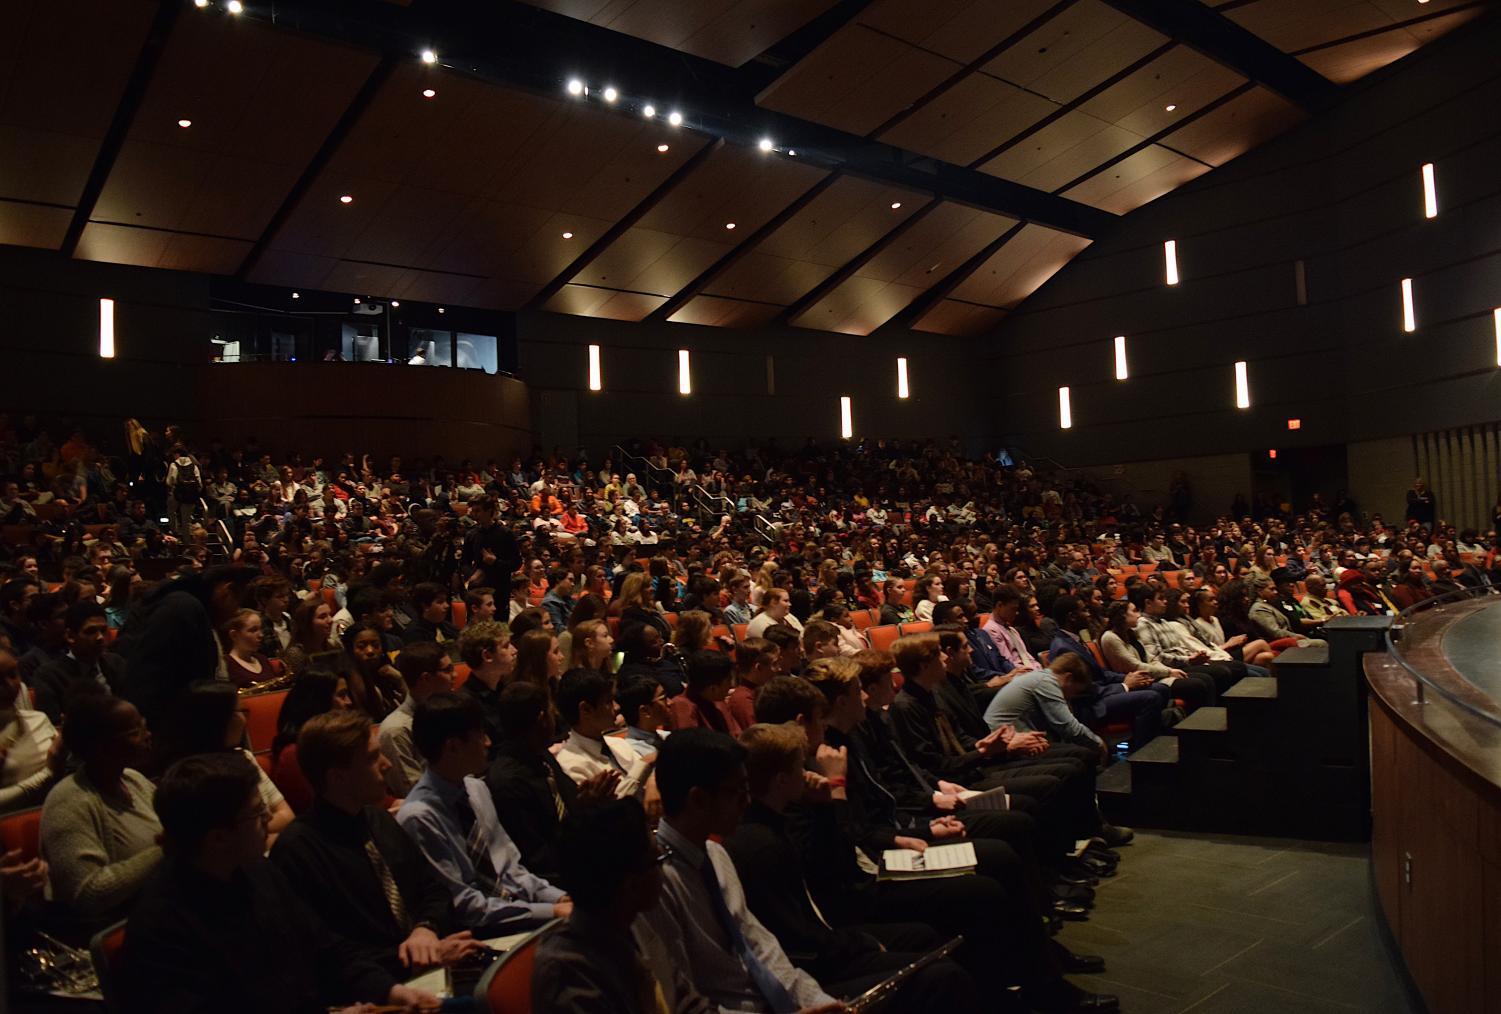 With+a+full+auditorium%2C+students+sit+respectfully+in+silence.